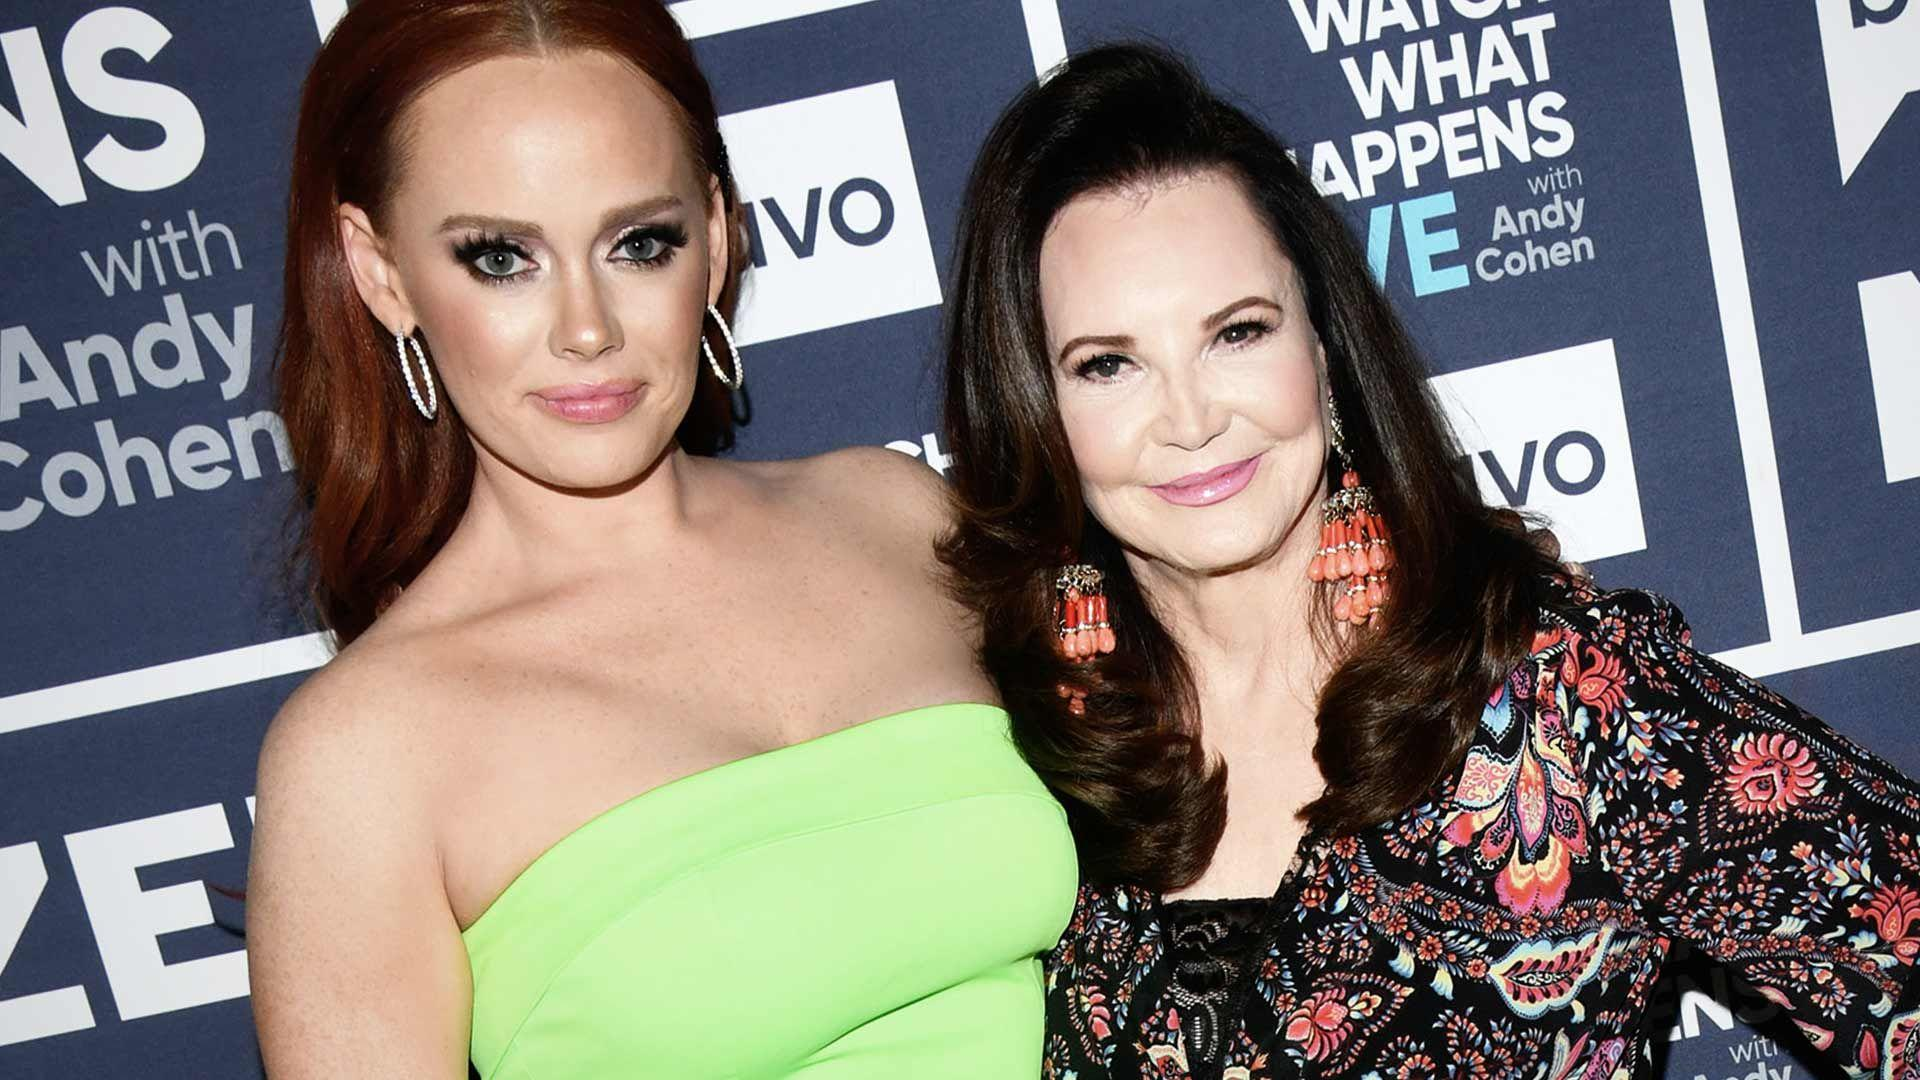 watch what happens live kathryn dennis & patricia altschul